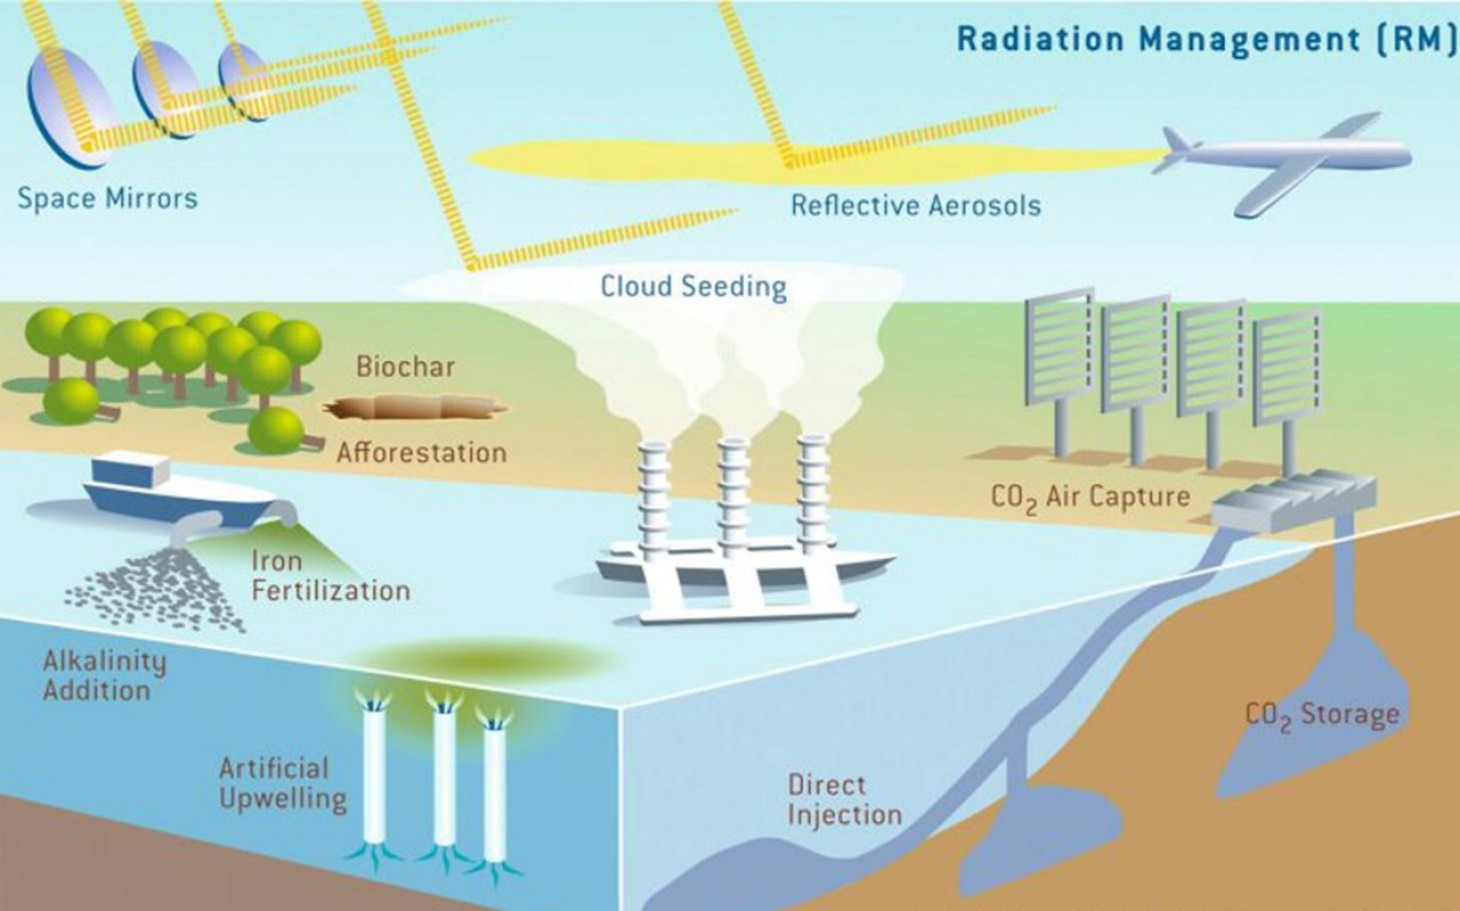 A combination of Carbon Dioxide removal (CDR) and SRM (Solar Radiation Management)